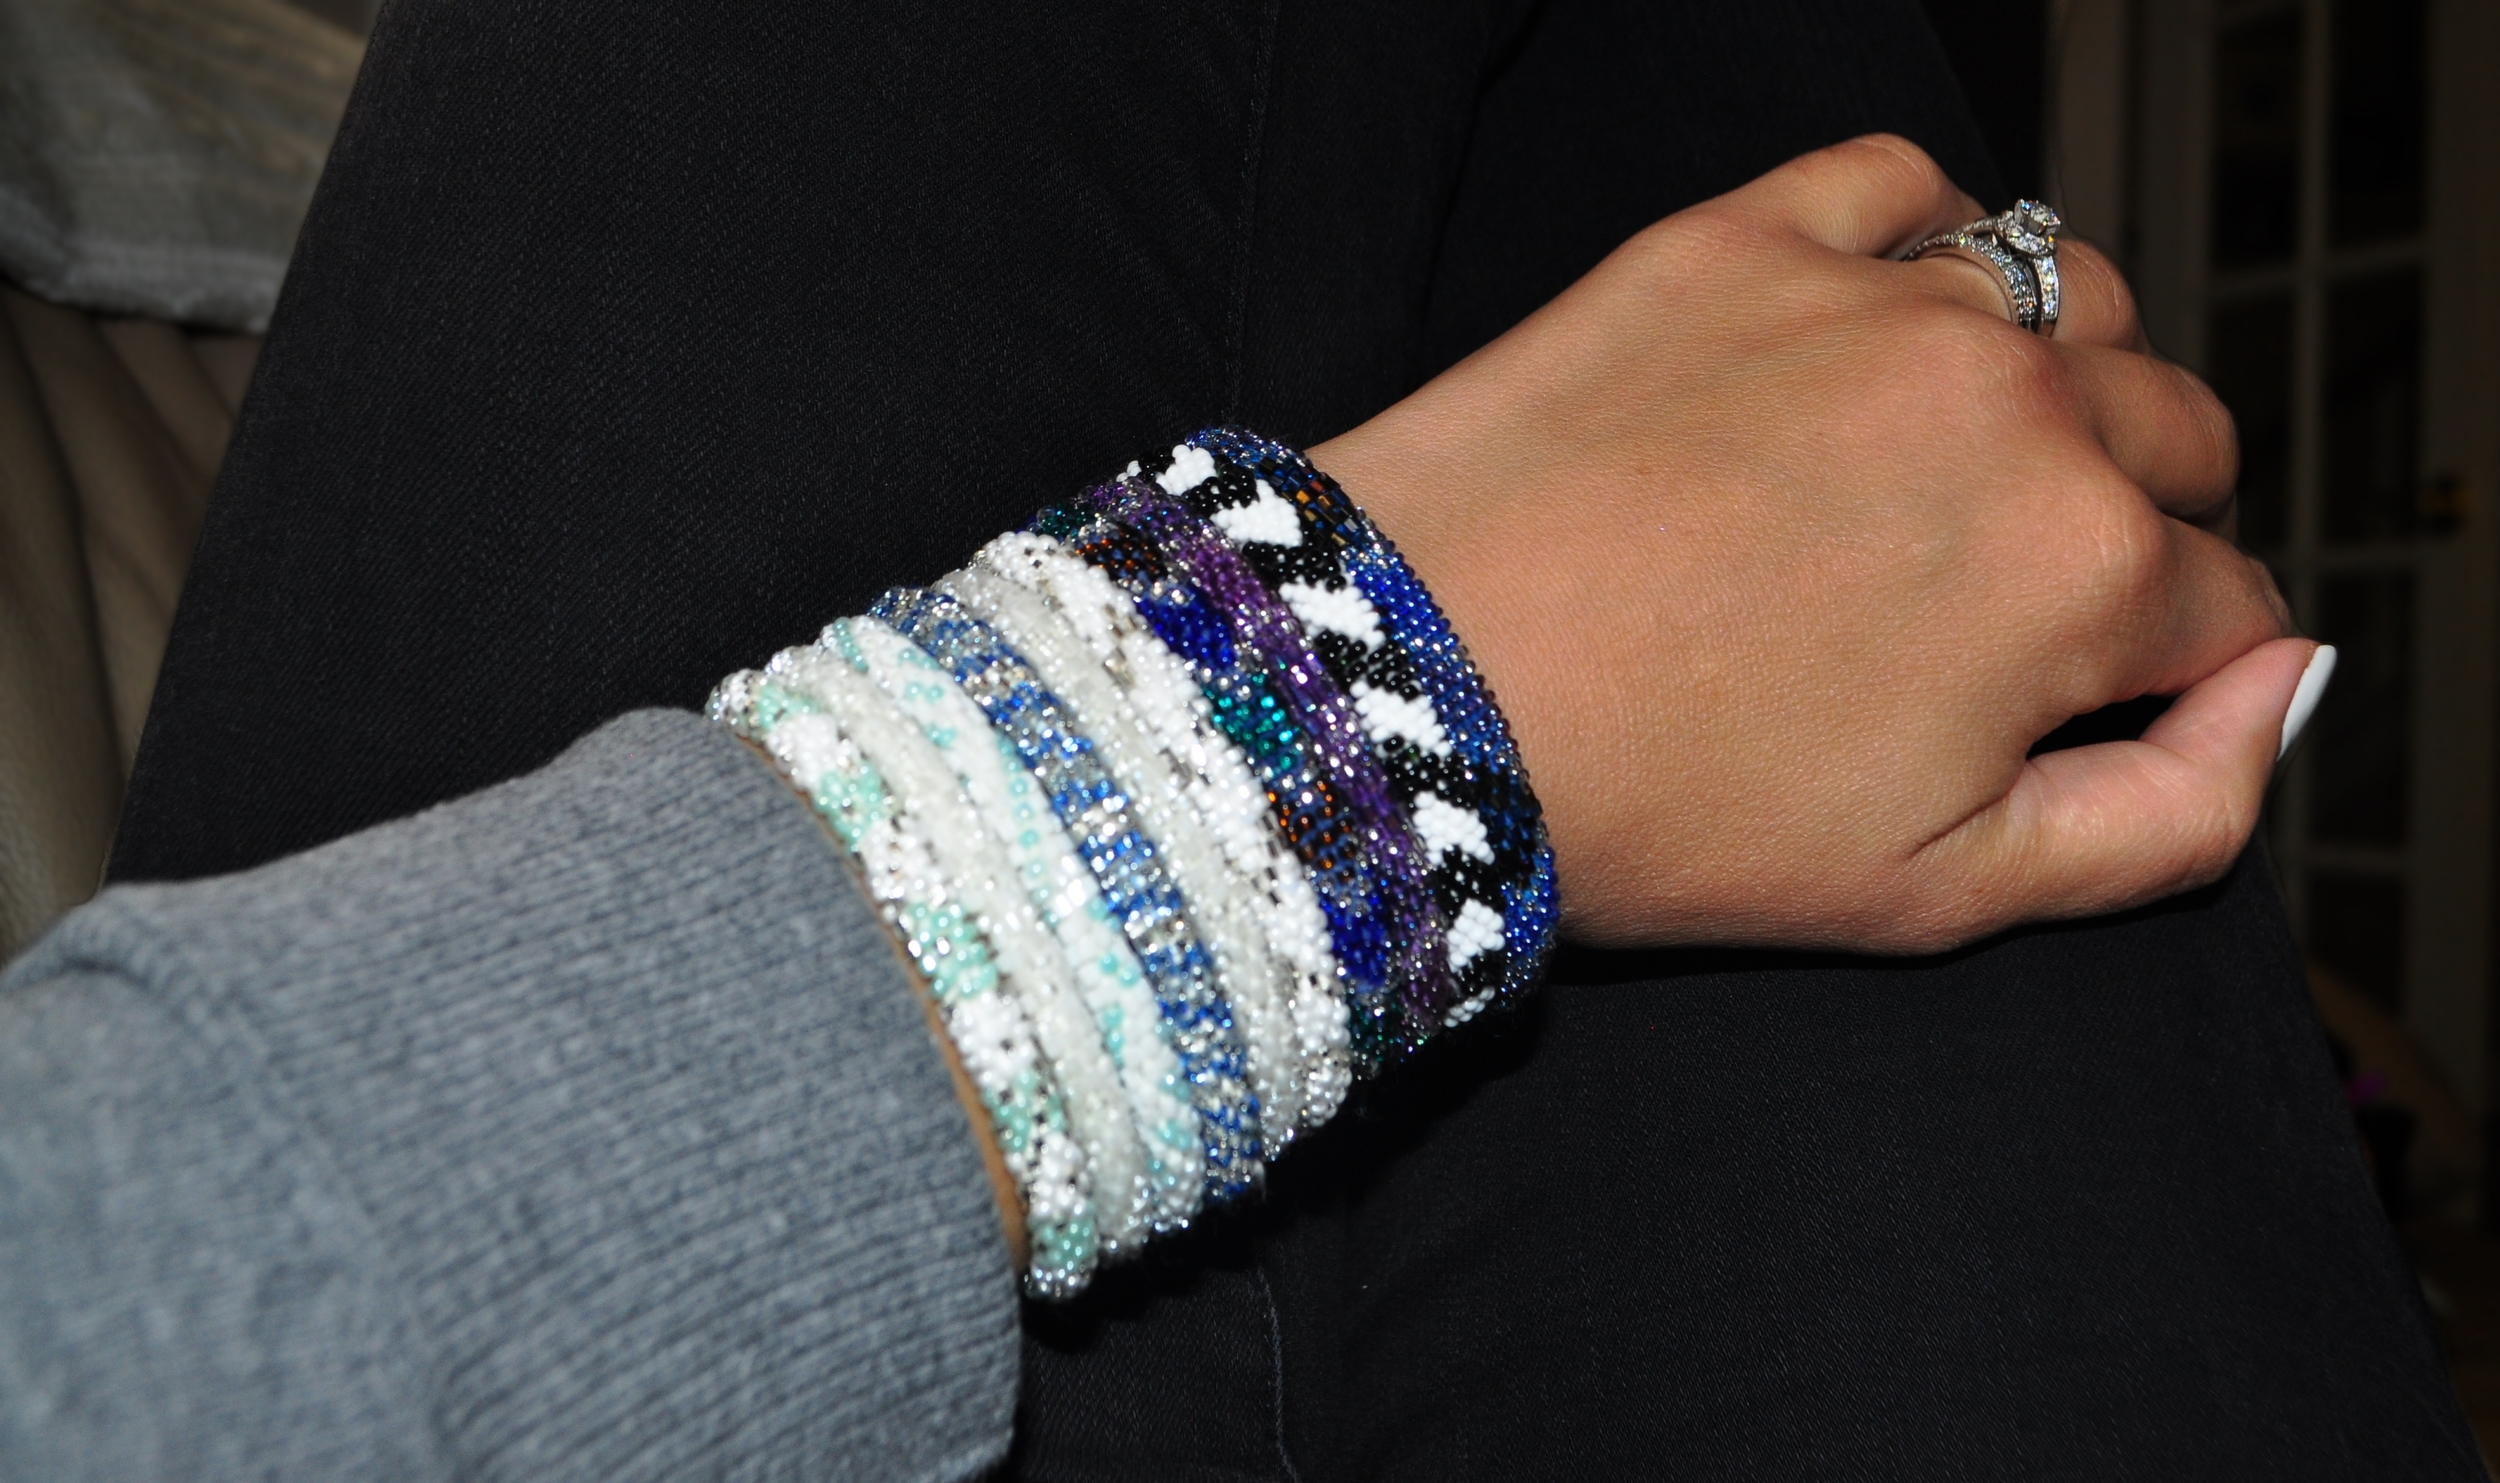 glass bead bracelets.jpg